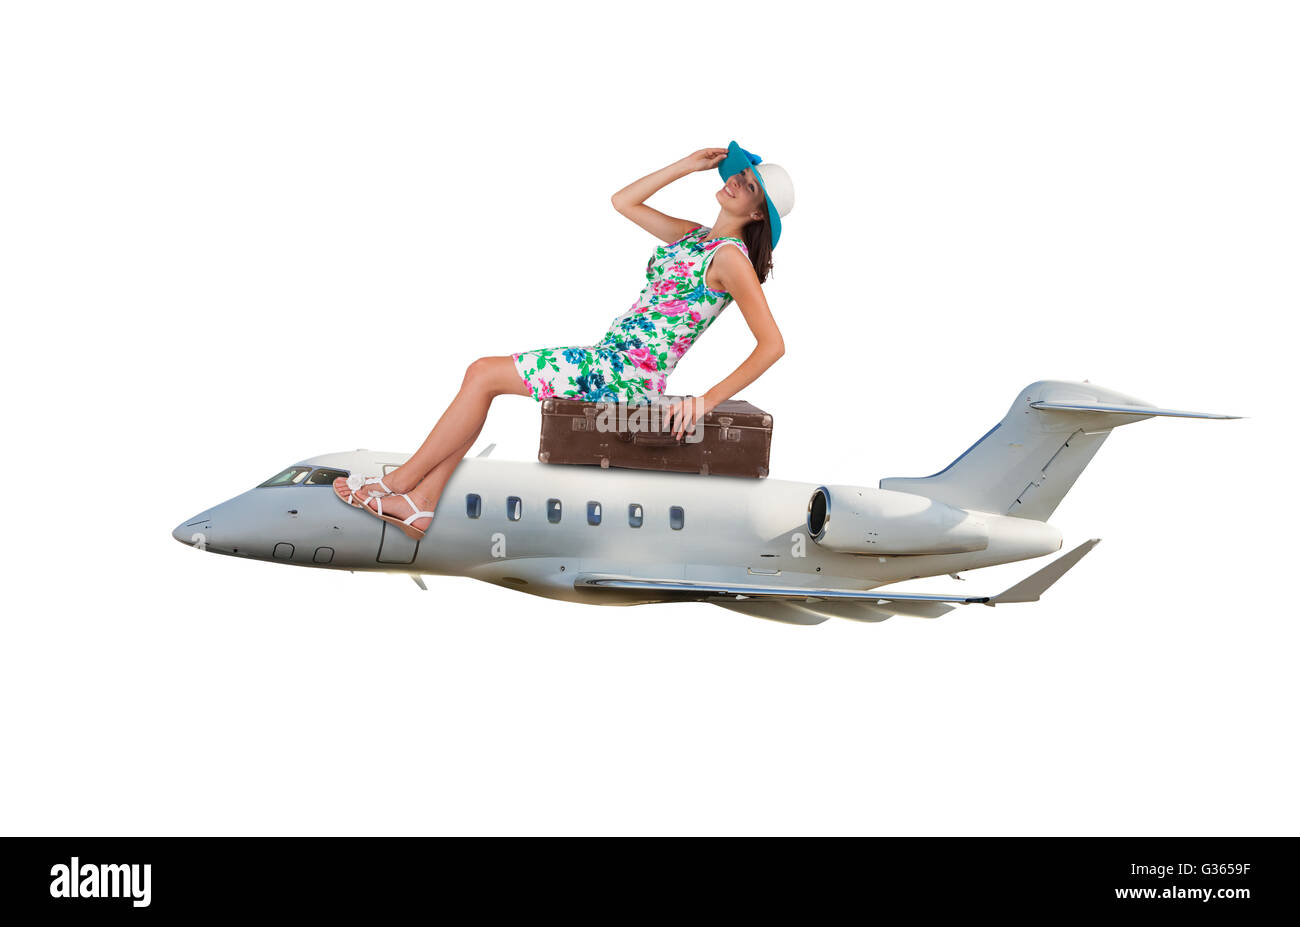 Young woman sitting on airplane,isolated on white background. Concept of traveling and summer vacation - Stock Image